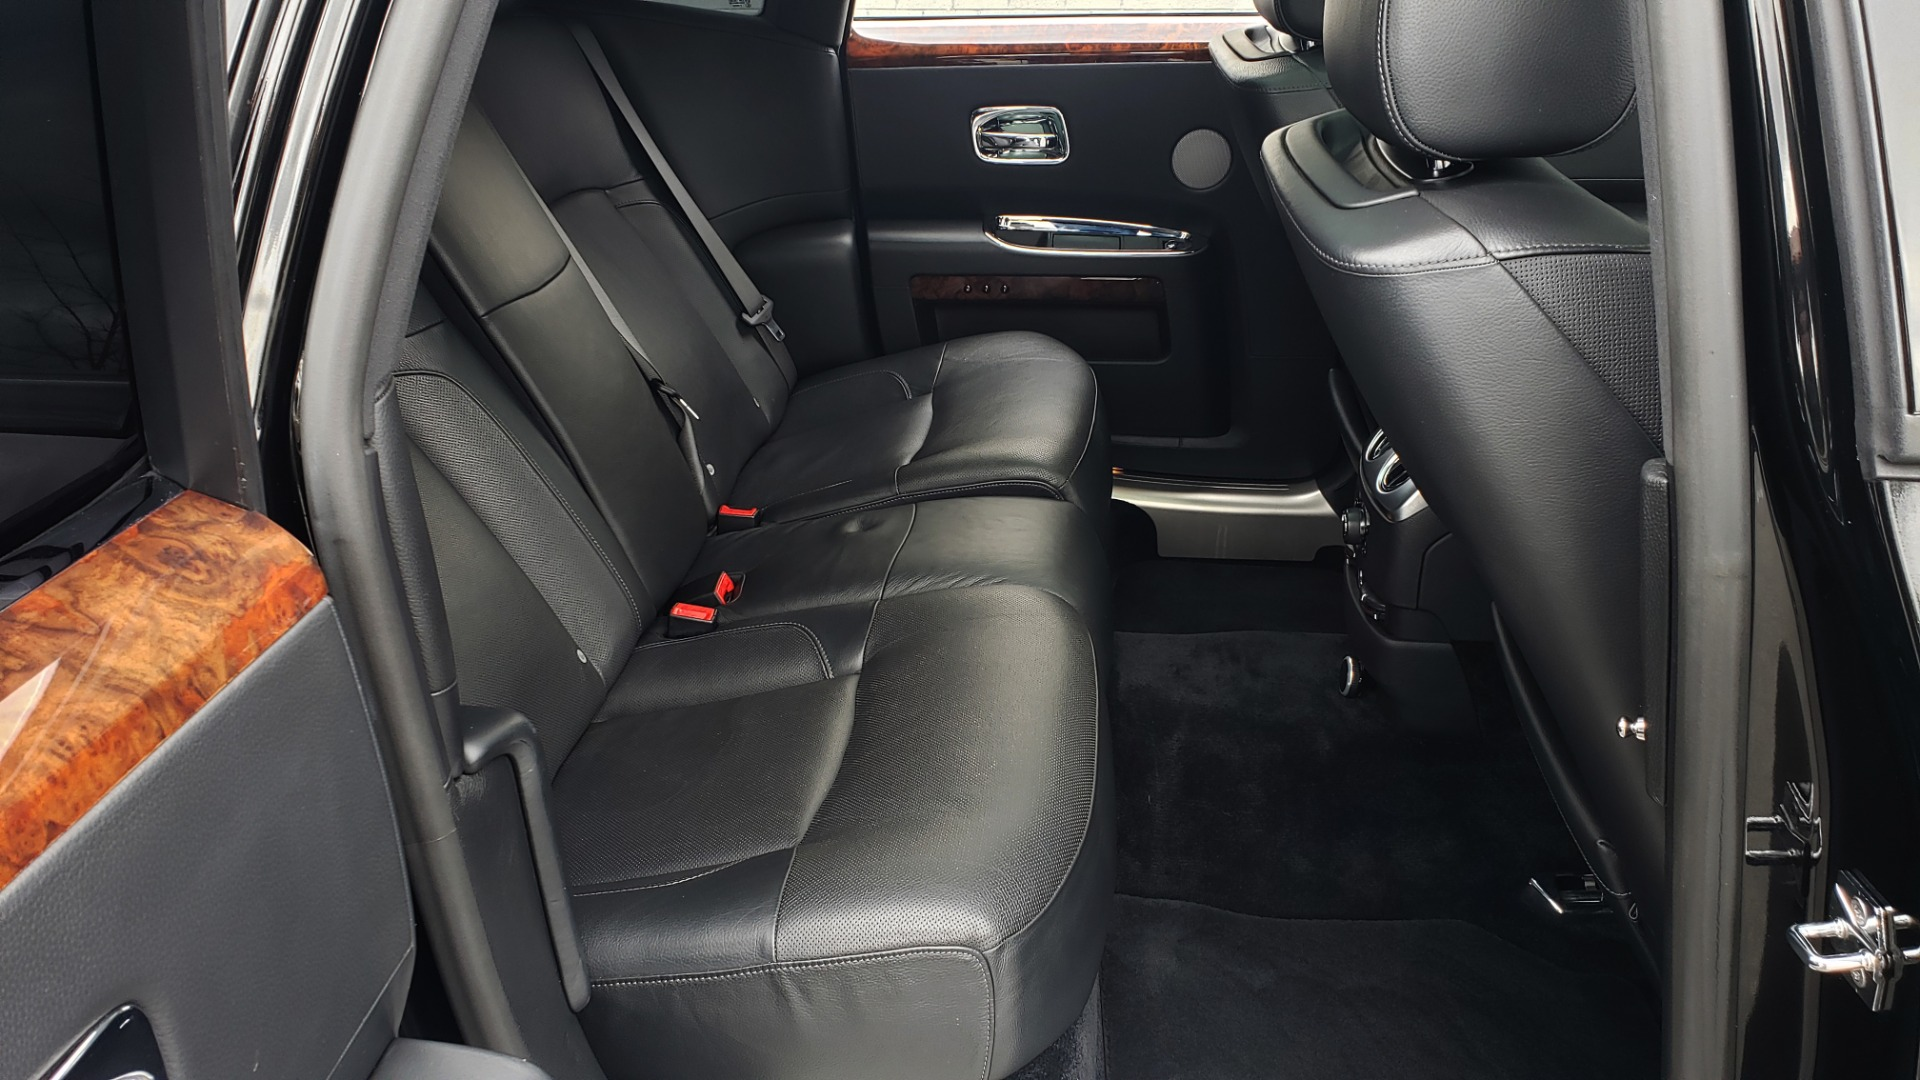 Used 2010 Rolls-Royce GHOST 6.6L TURBO V12 (563HP) / NAV / SUNROOF / SUICIDE DOORS for sale $89,000 at Formula Imports in Charlotte NC 28227 34